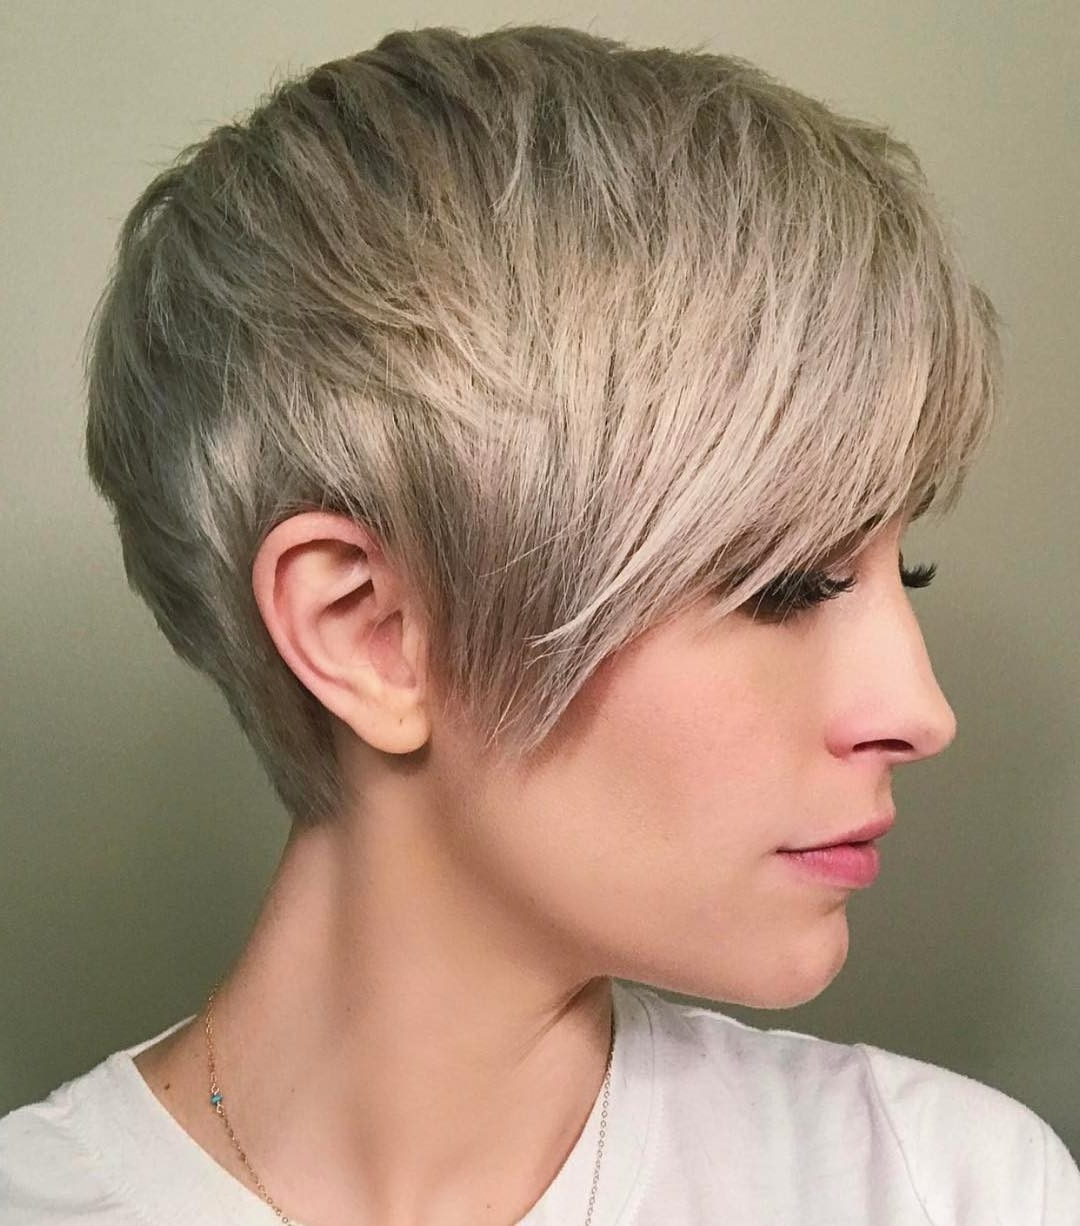 Preferred Disconnected Blonde Balayage Pixie Hairstyles In 10 Best Short Straight Hairstyle Trends – Women Short Haircut Ideas  (View 12 of 20)